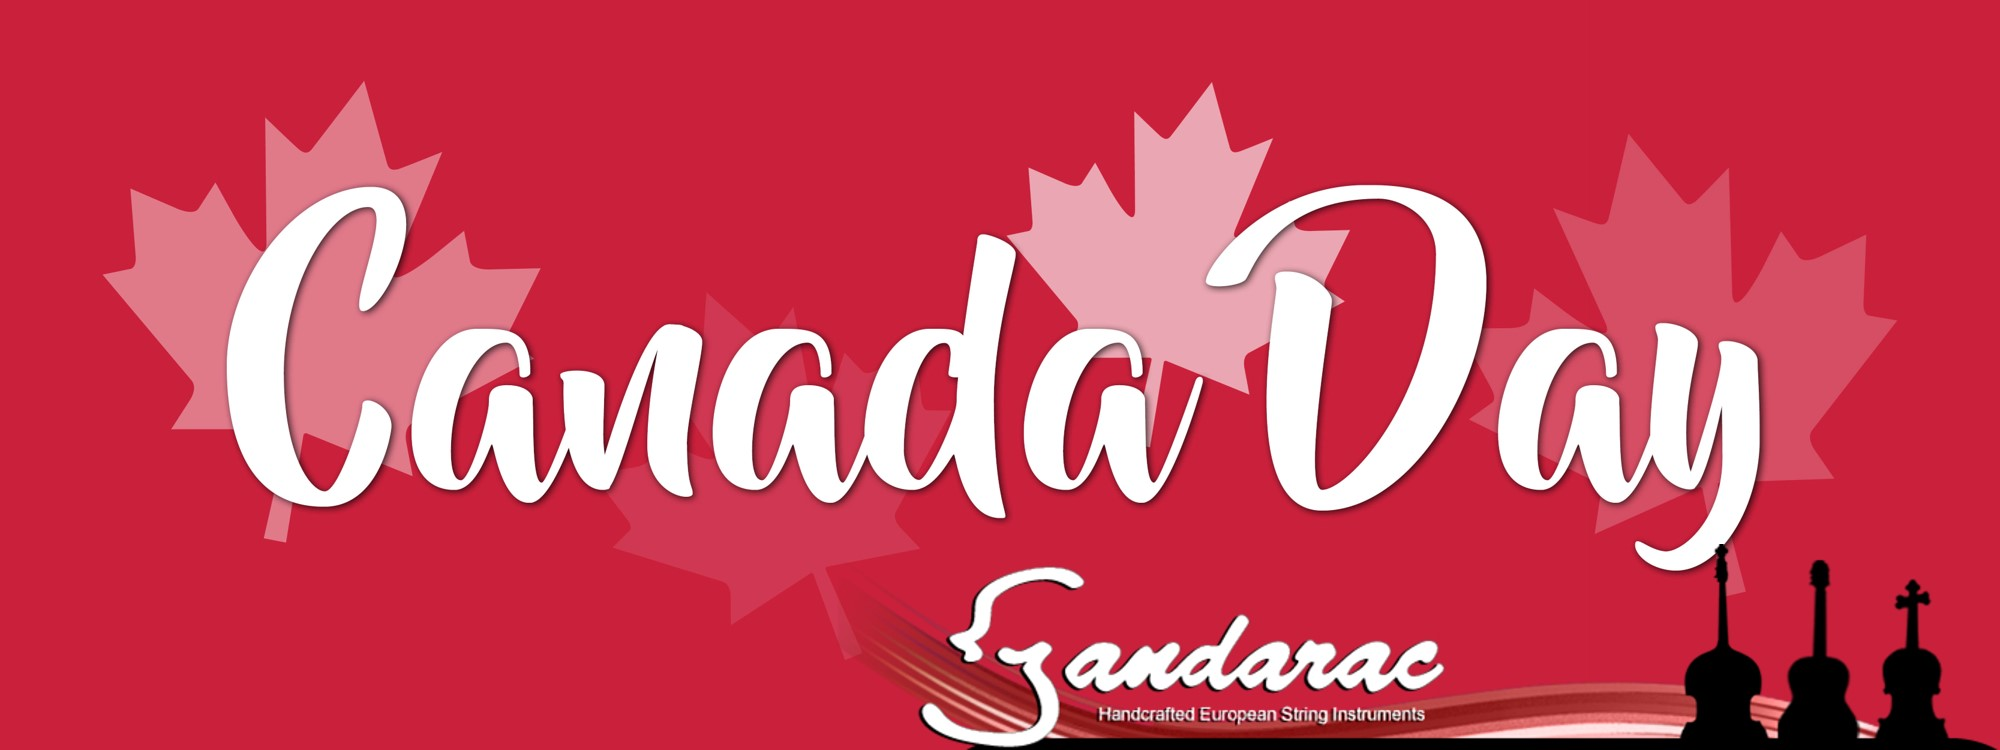 Picture1 - Canada Day